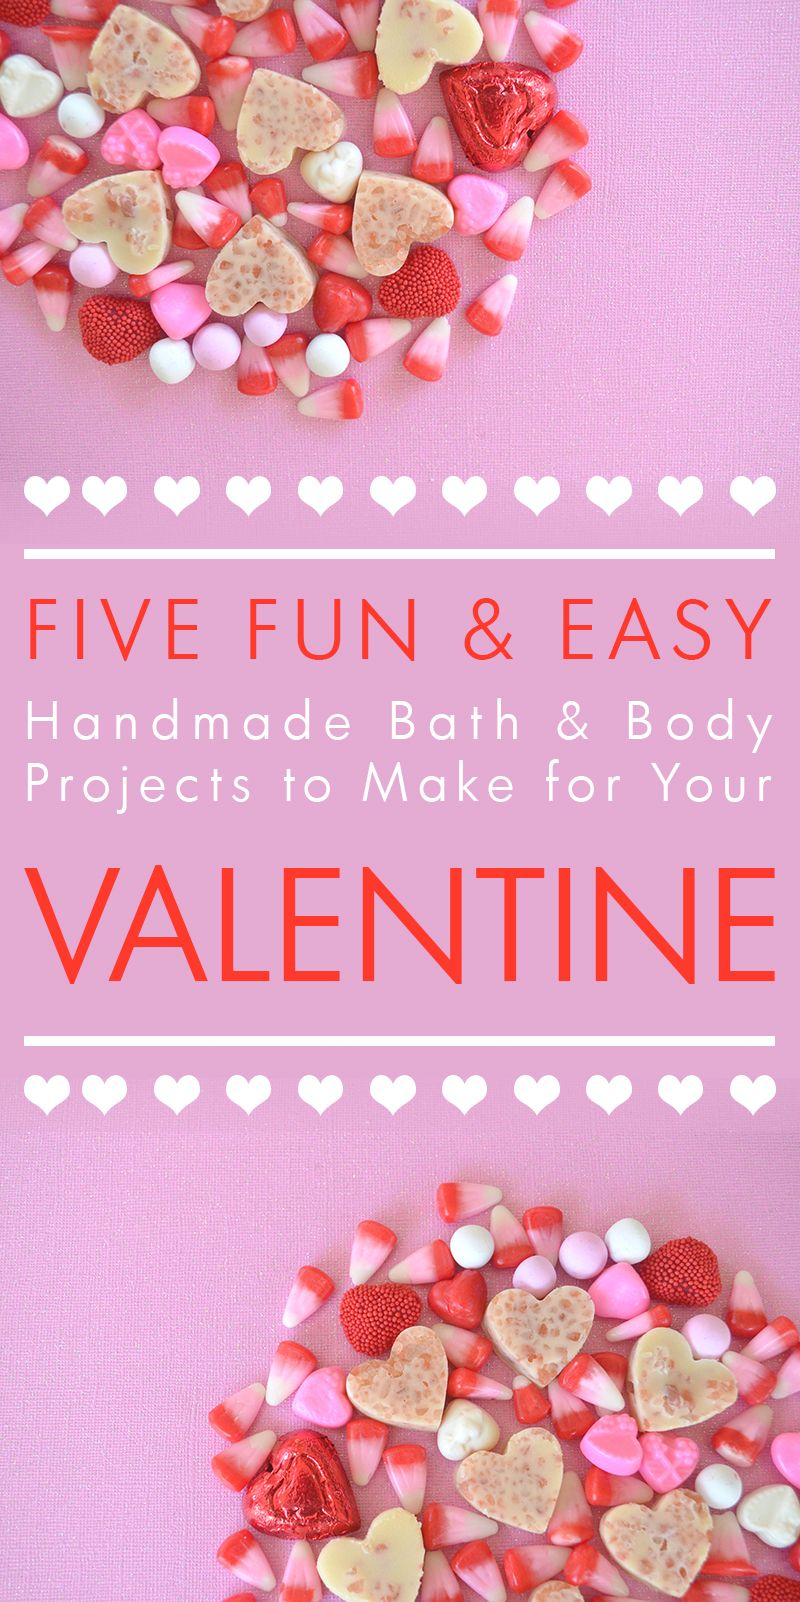 Five Handmade Bath & Body Projects to Make For Your Valentine: Recipes for Heart Shaped Bath Bombs, Rose Bud Bath Melts, Herbal Bath Tea, Raspberry Lotion Bars, and Himalayan Salt Melts